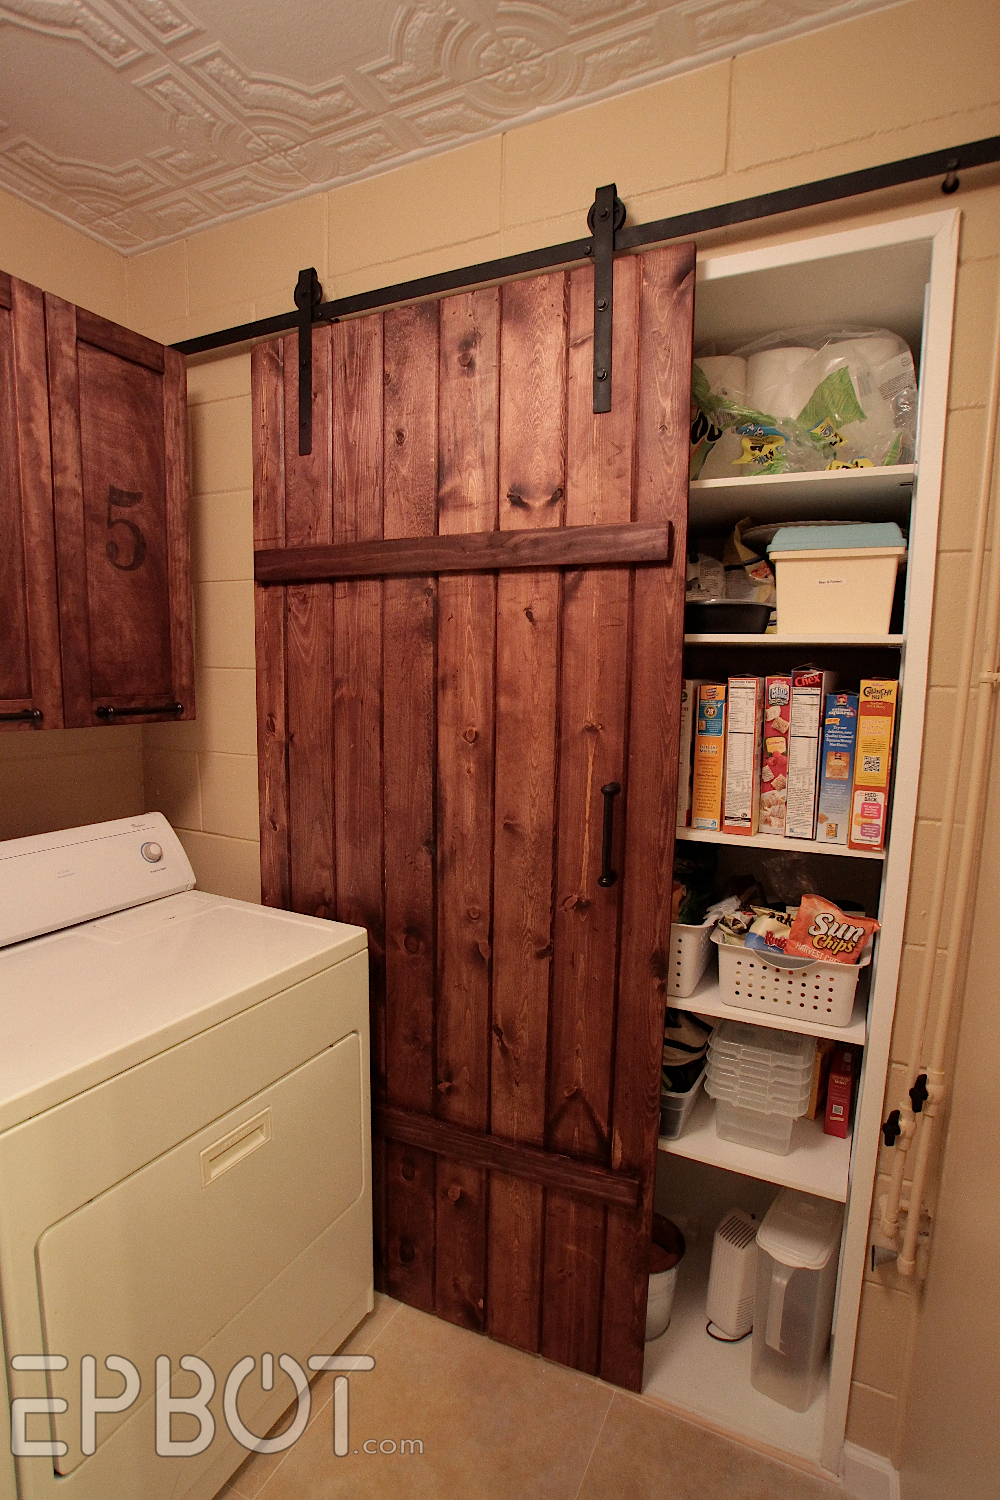 & EPBOT: Make Your Own Sliding Barn Door - For Cheap! Pezcame.Com